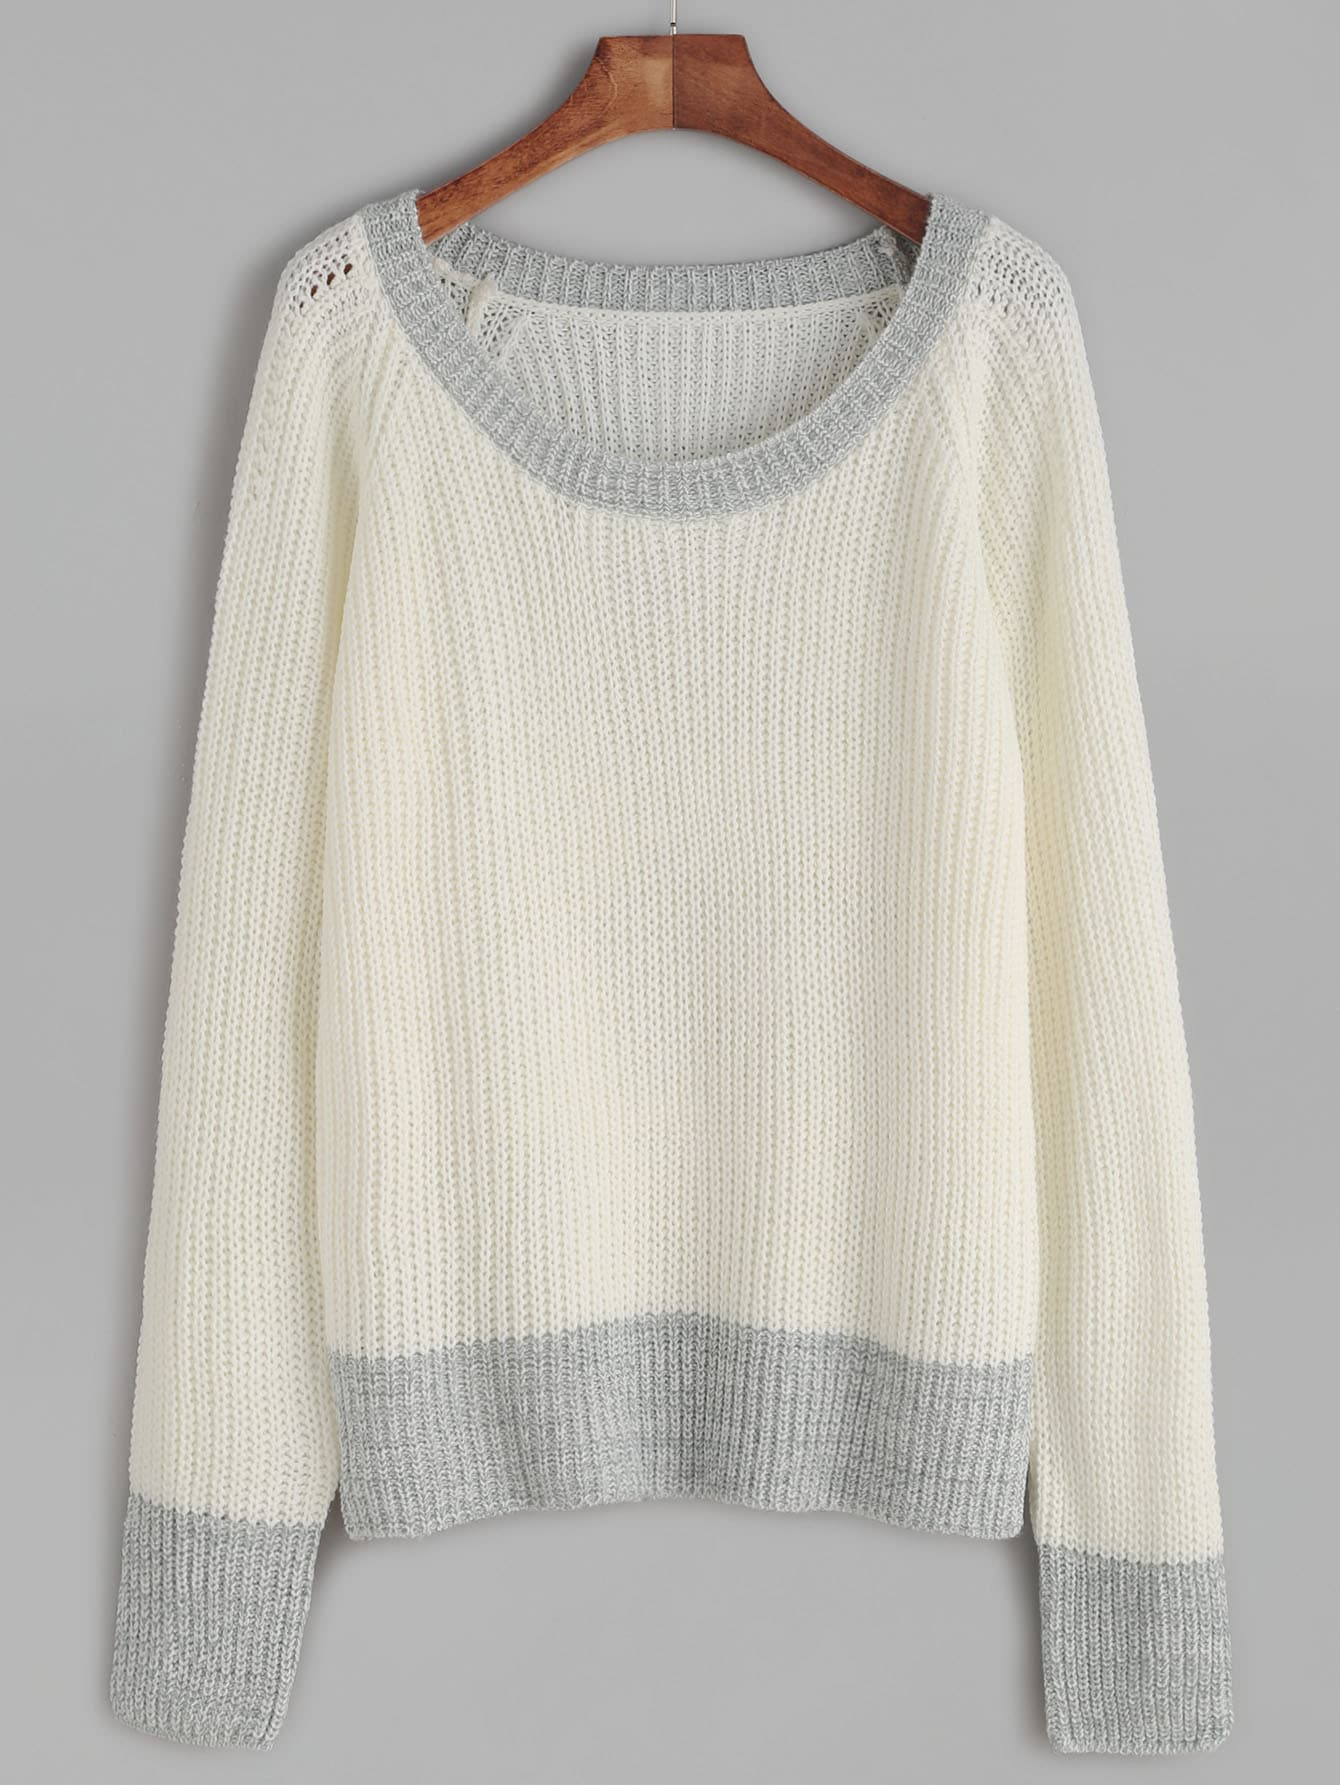 White Contrast Trim Waffle Knit Raglan Sleeve Sweater sweater160901462